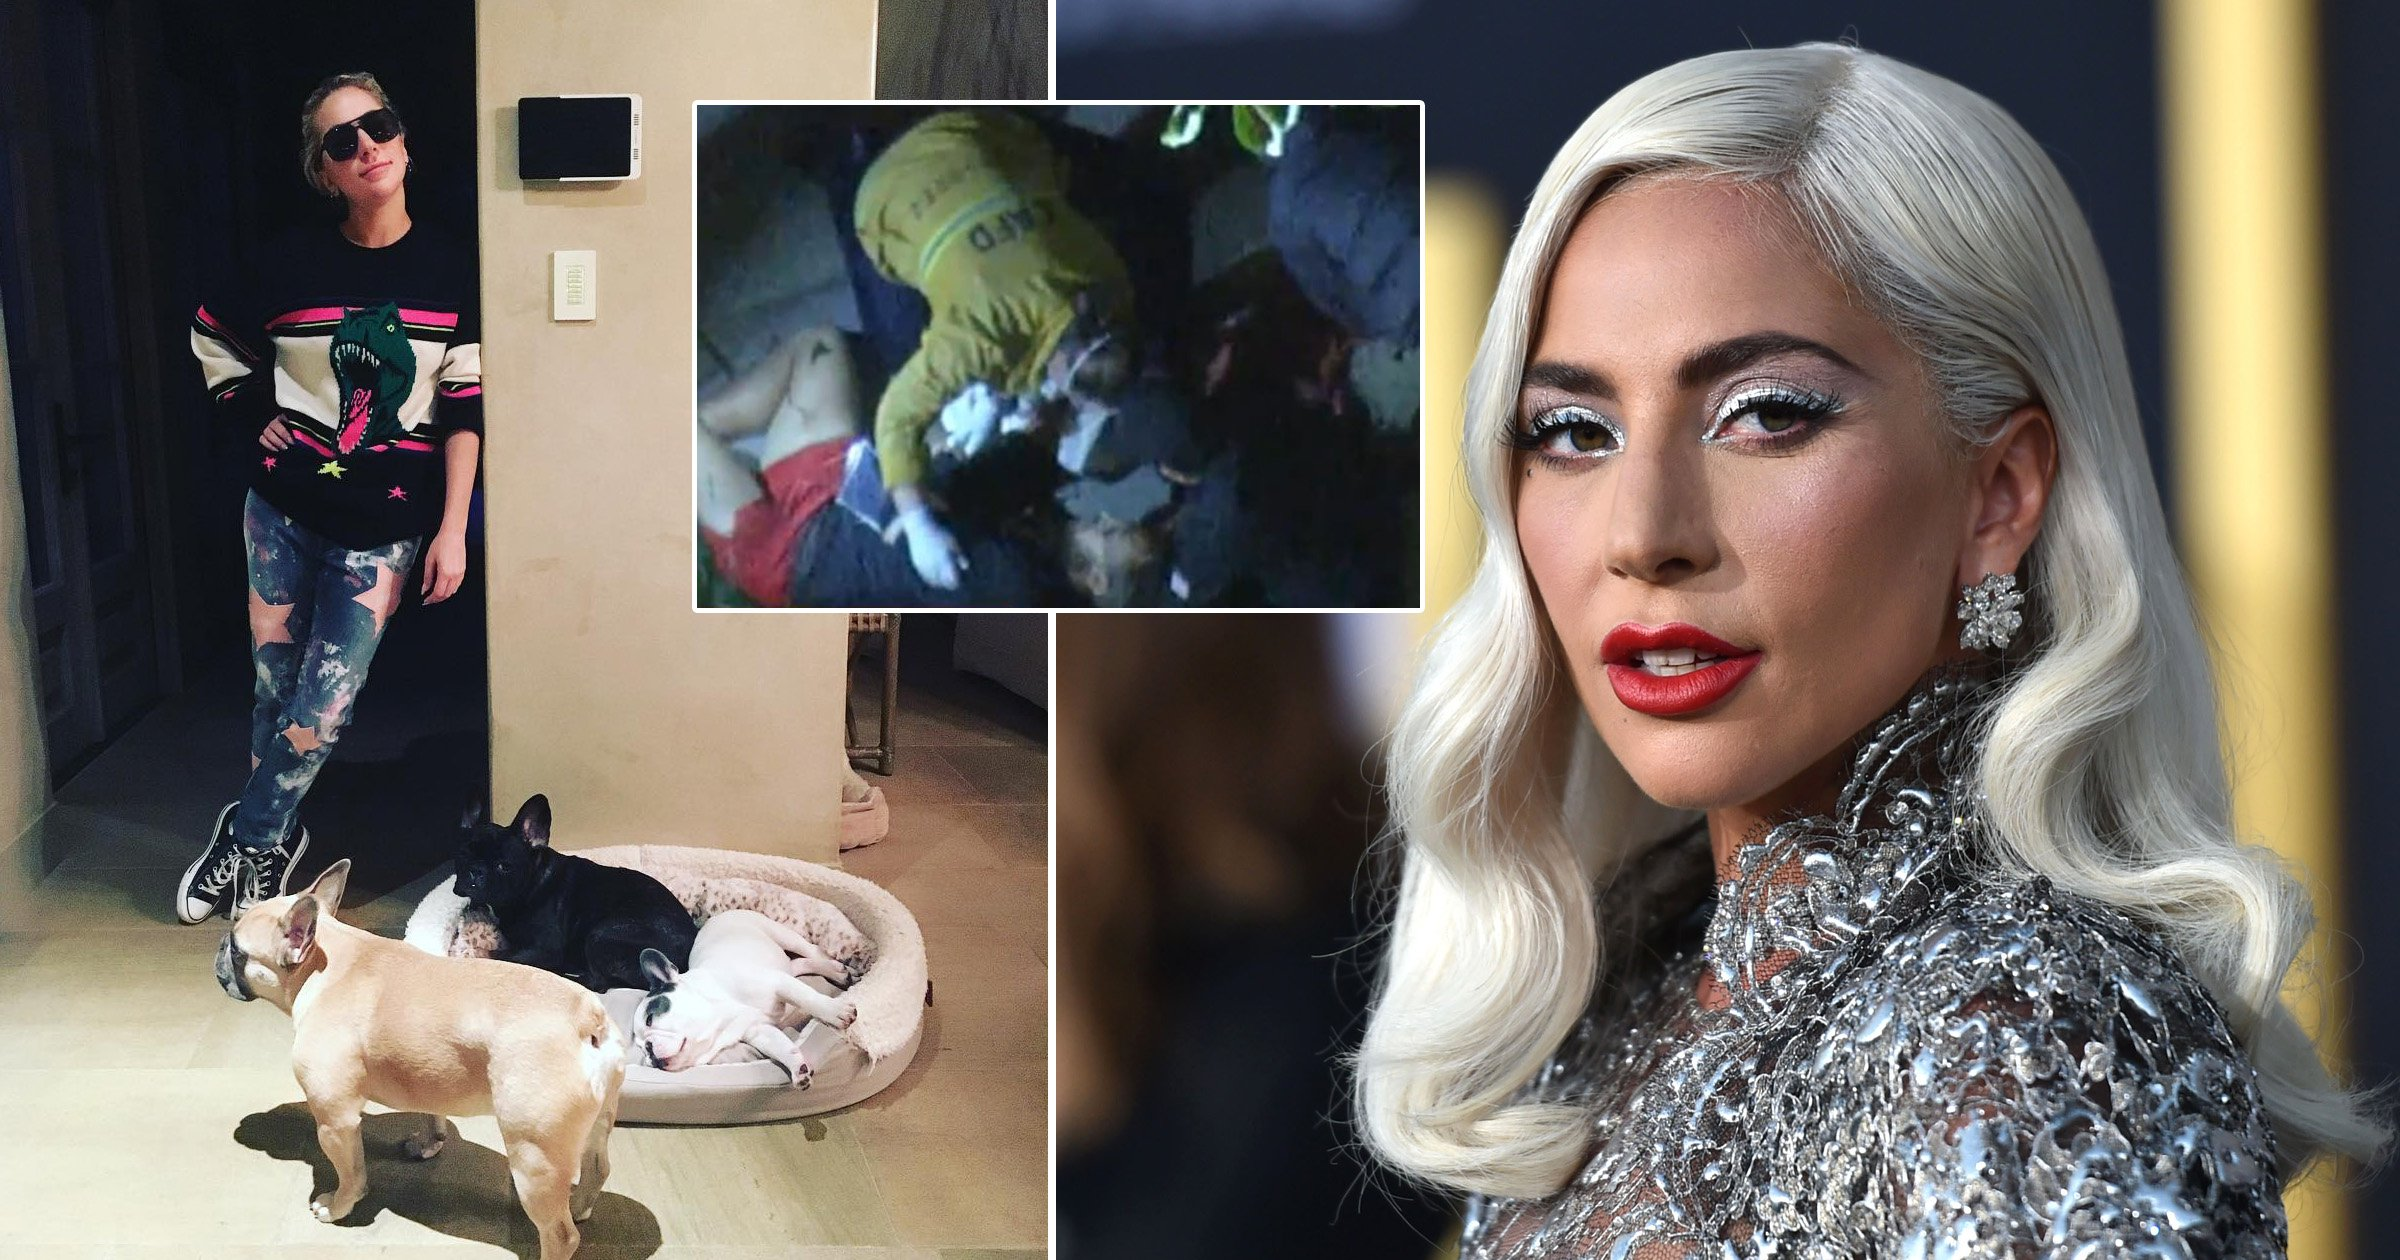 Lady Gaga's dog walker to make 'full recovery' after dognapping attack and thanks singer for her 'support'